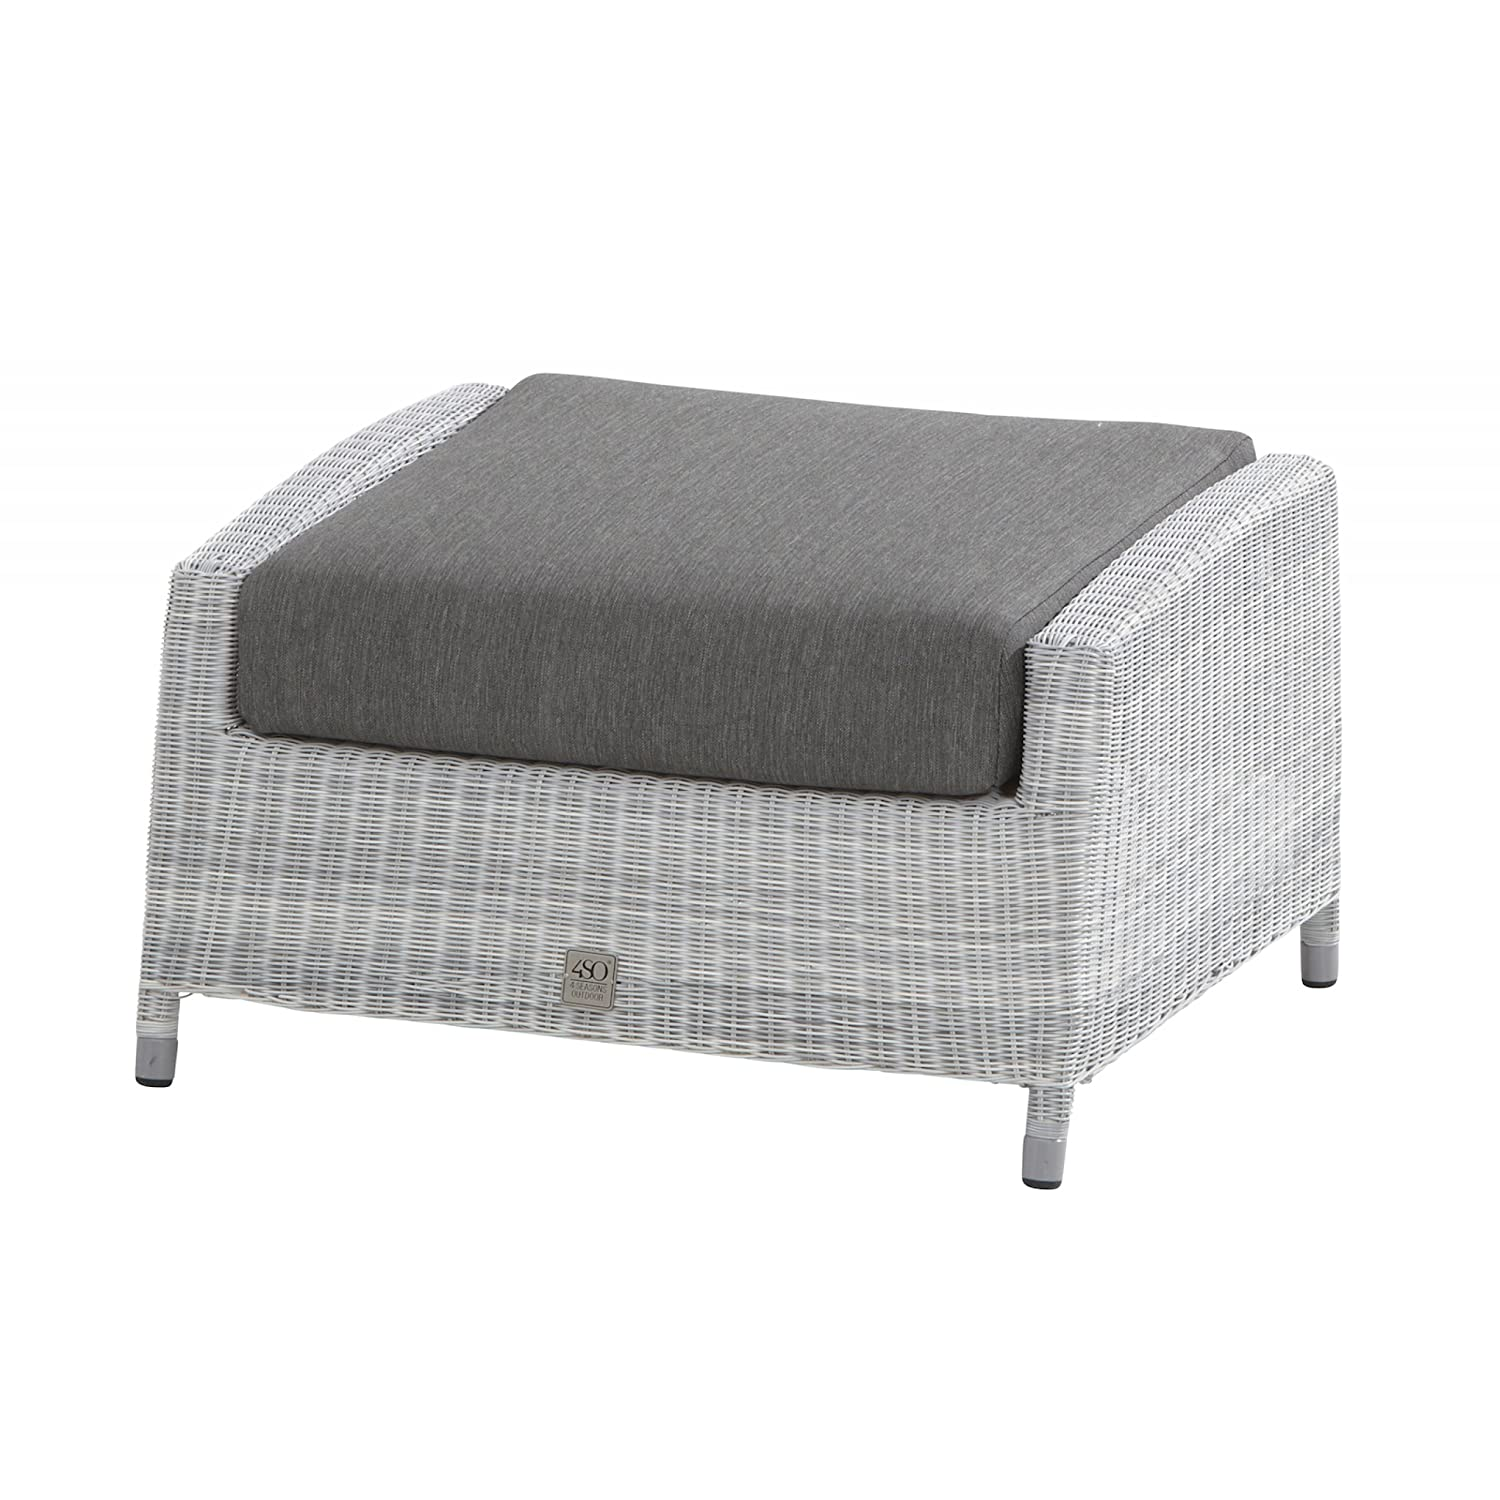 4Seasons Outdoor Castillo Fussteil Loungehocker inkl. Kissen Polyloom Ice